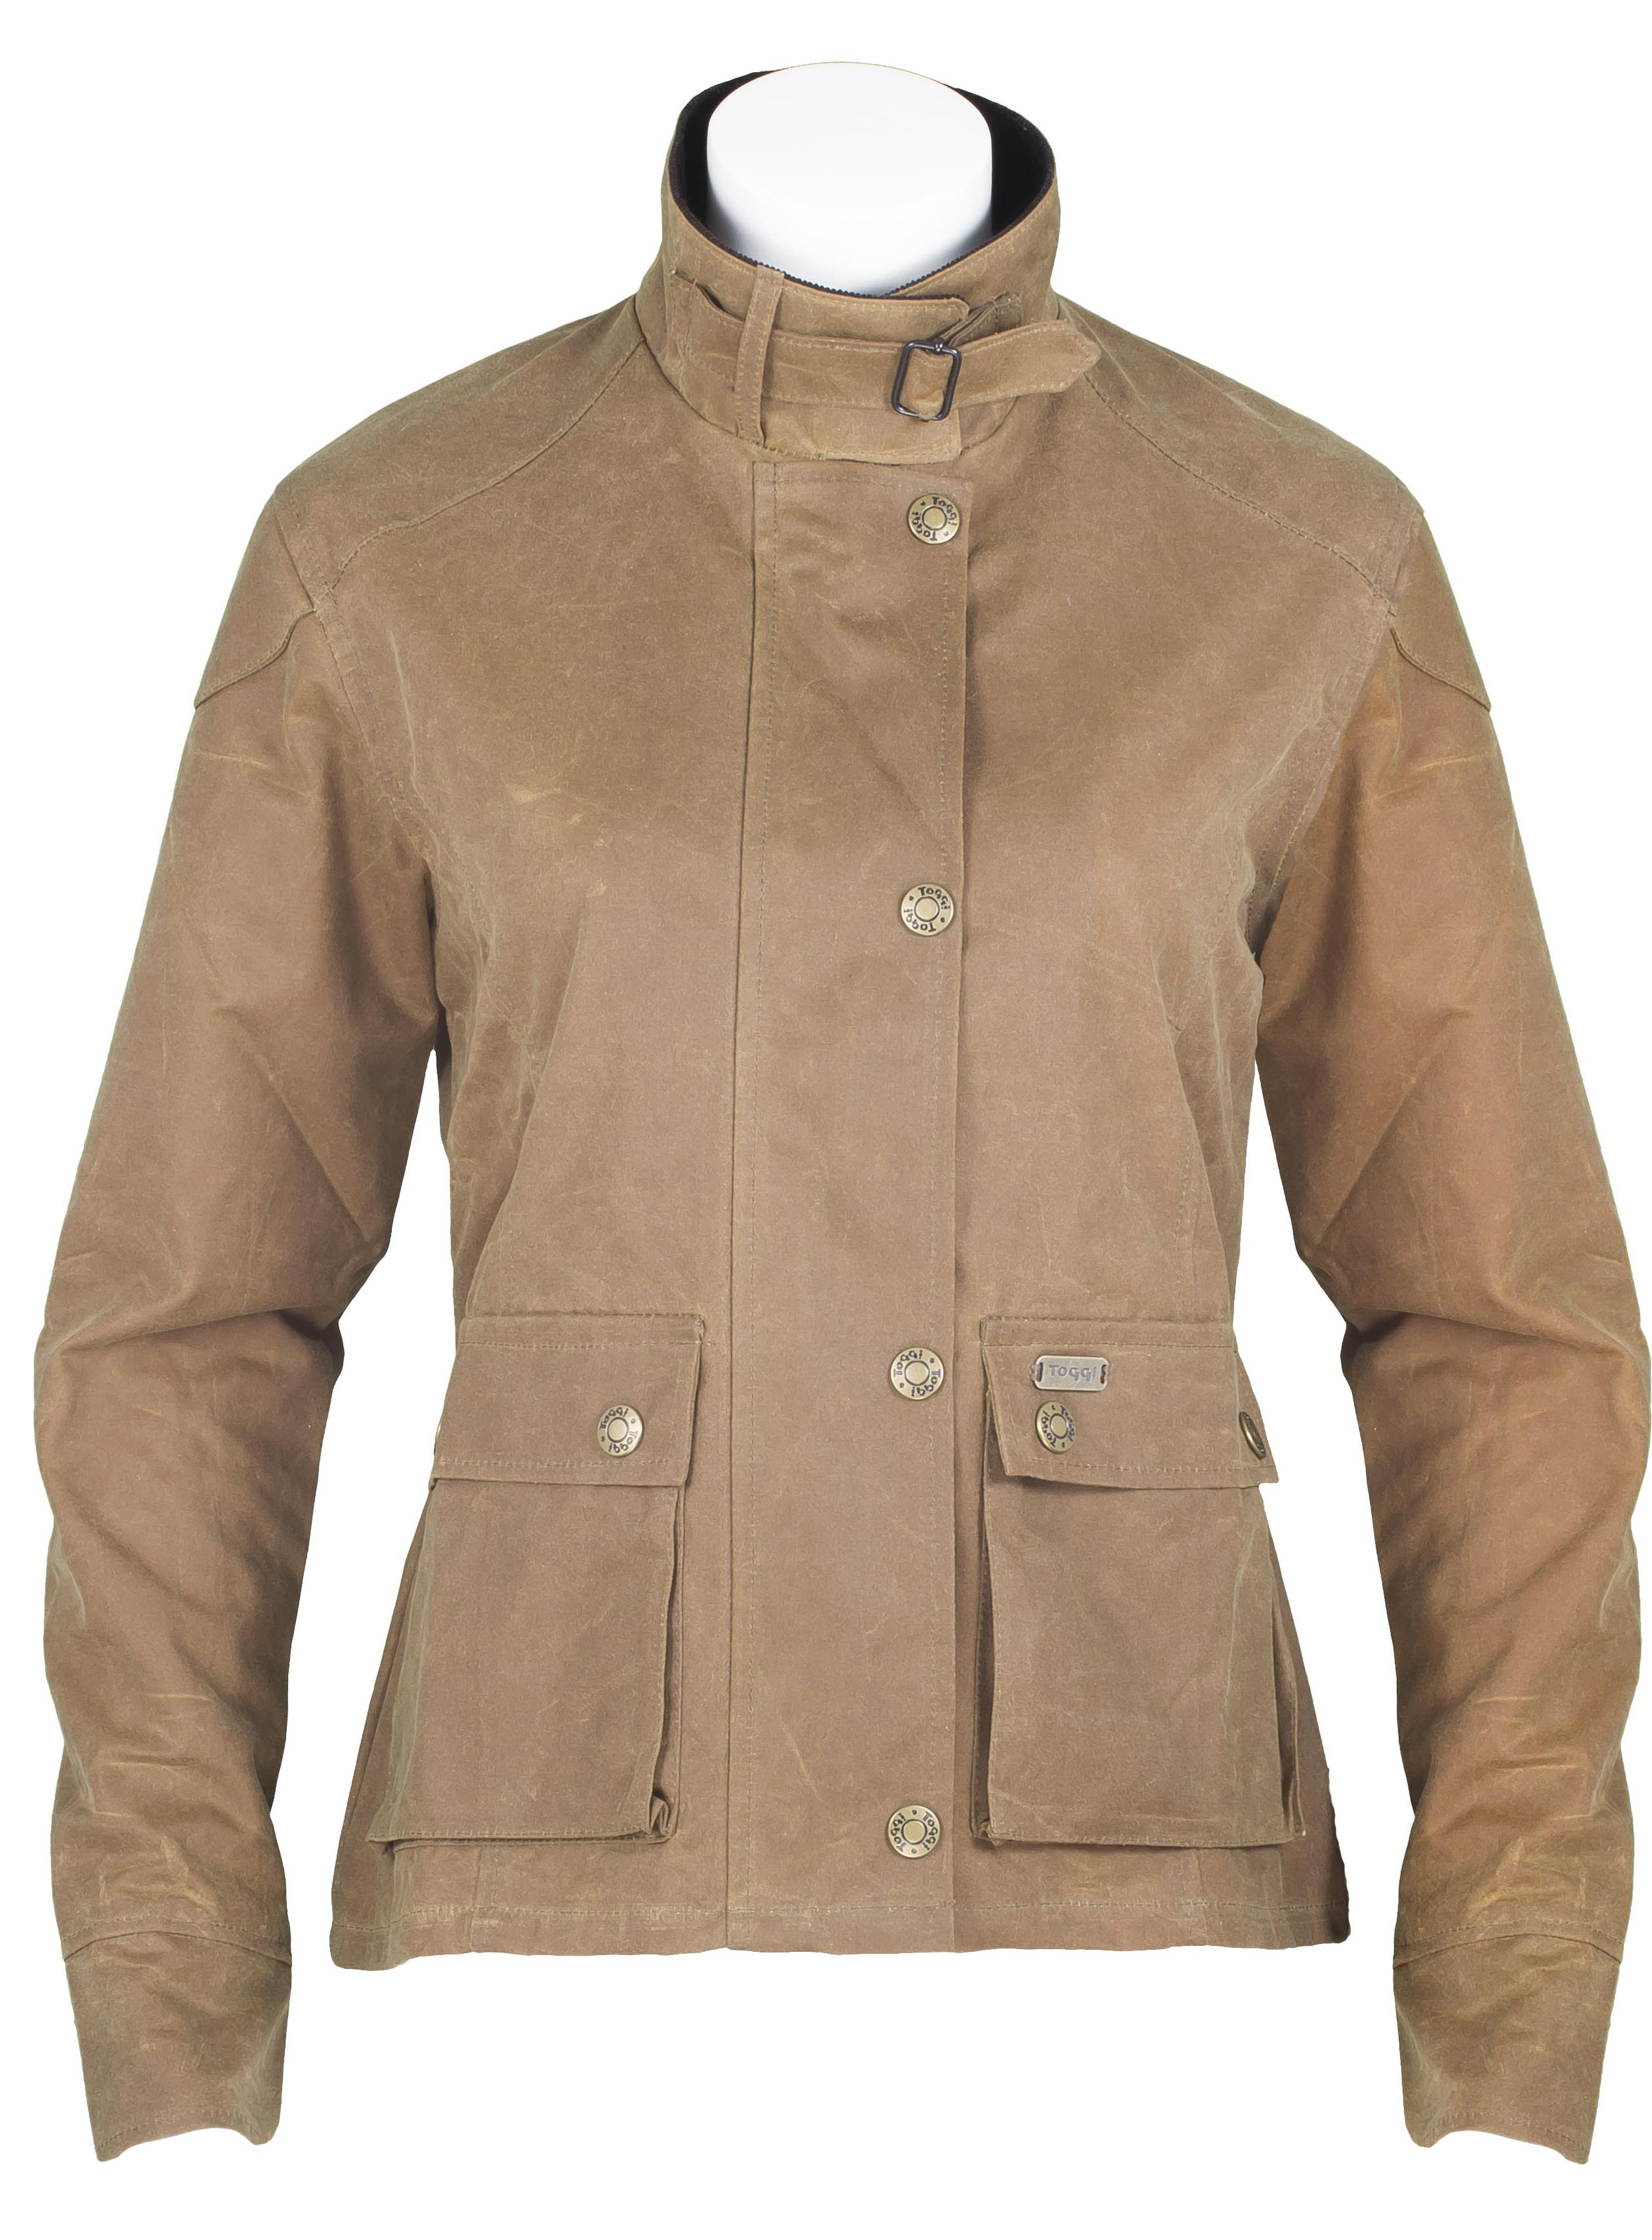 The great looking Aylesbury waxed jacket from Toggi is sure to be a hit this autumn